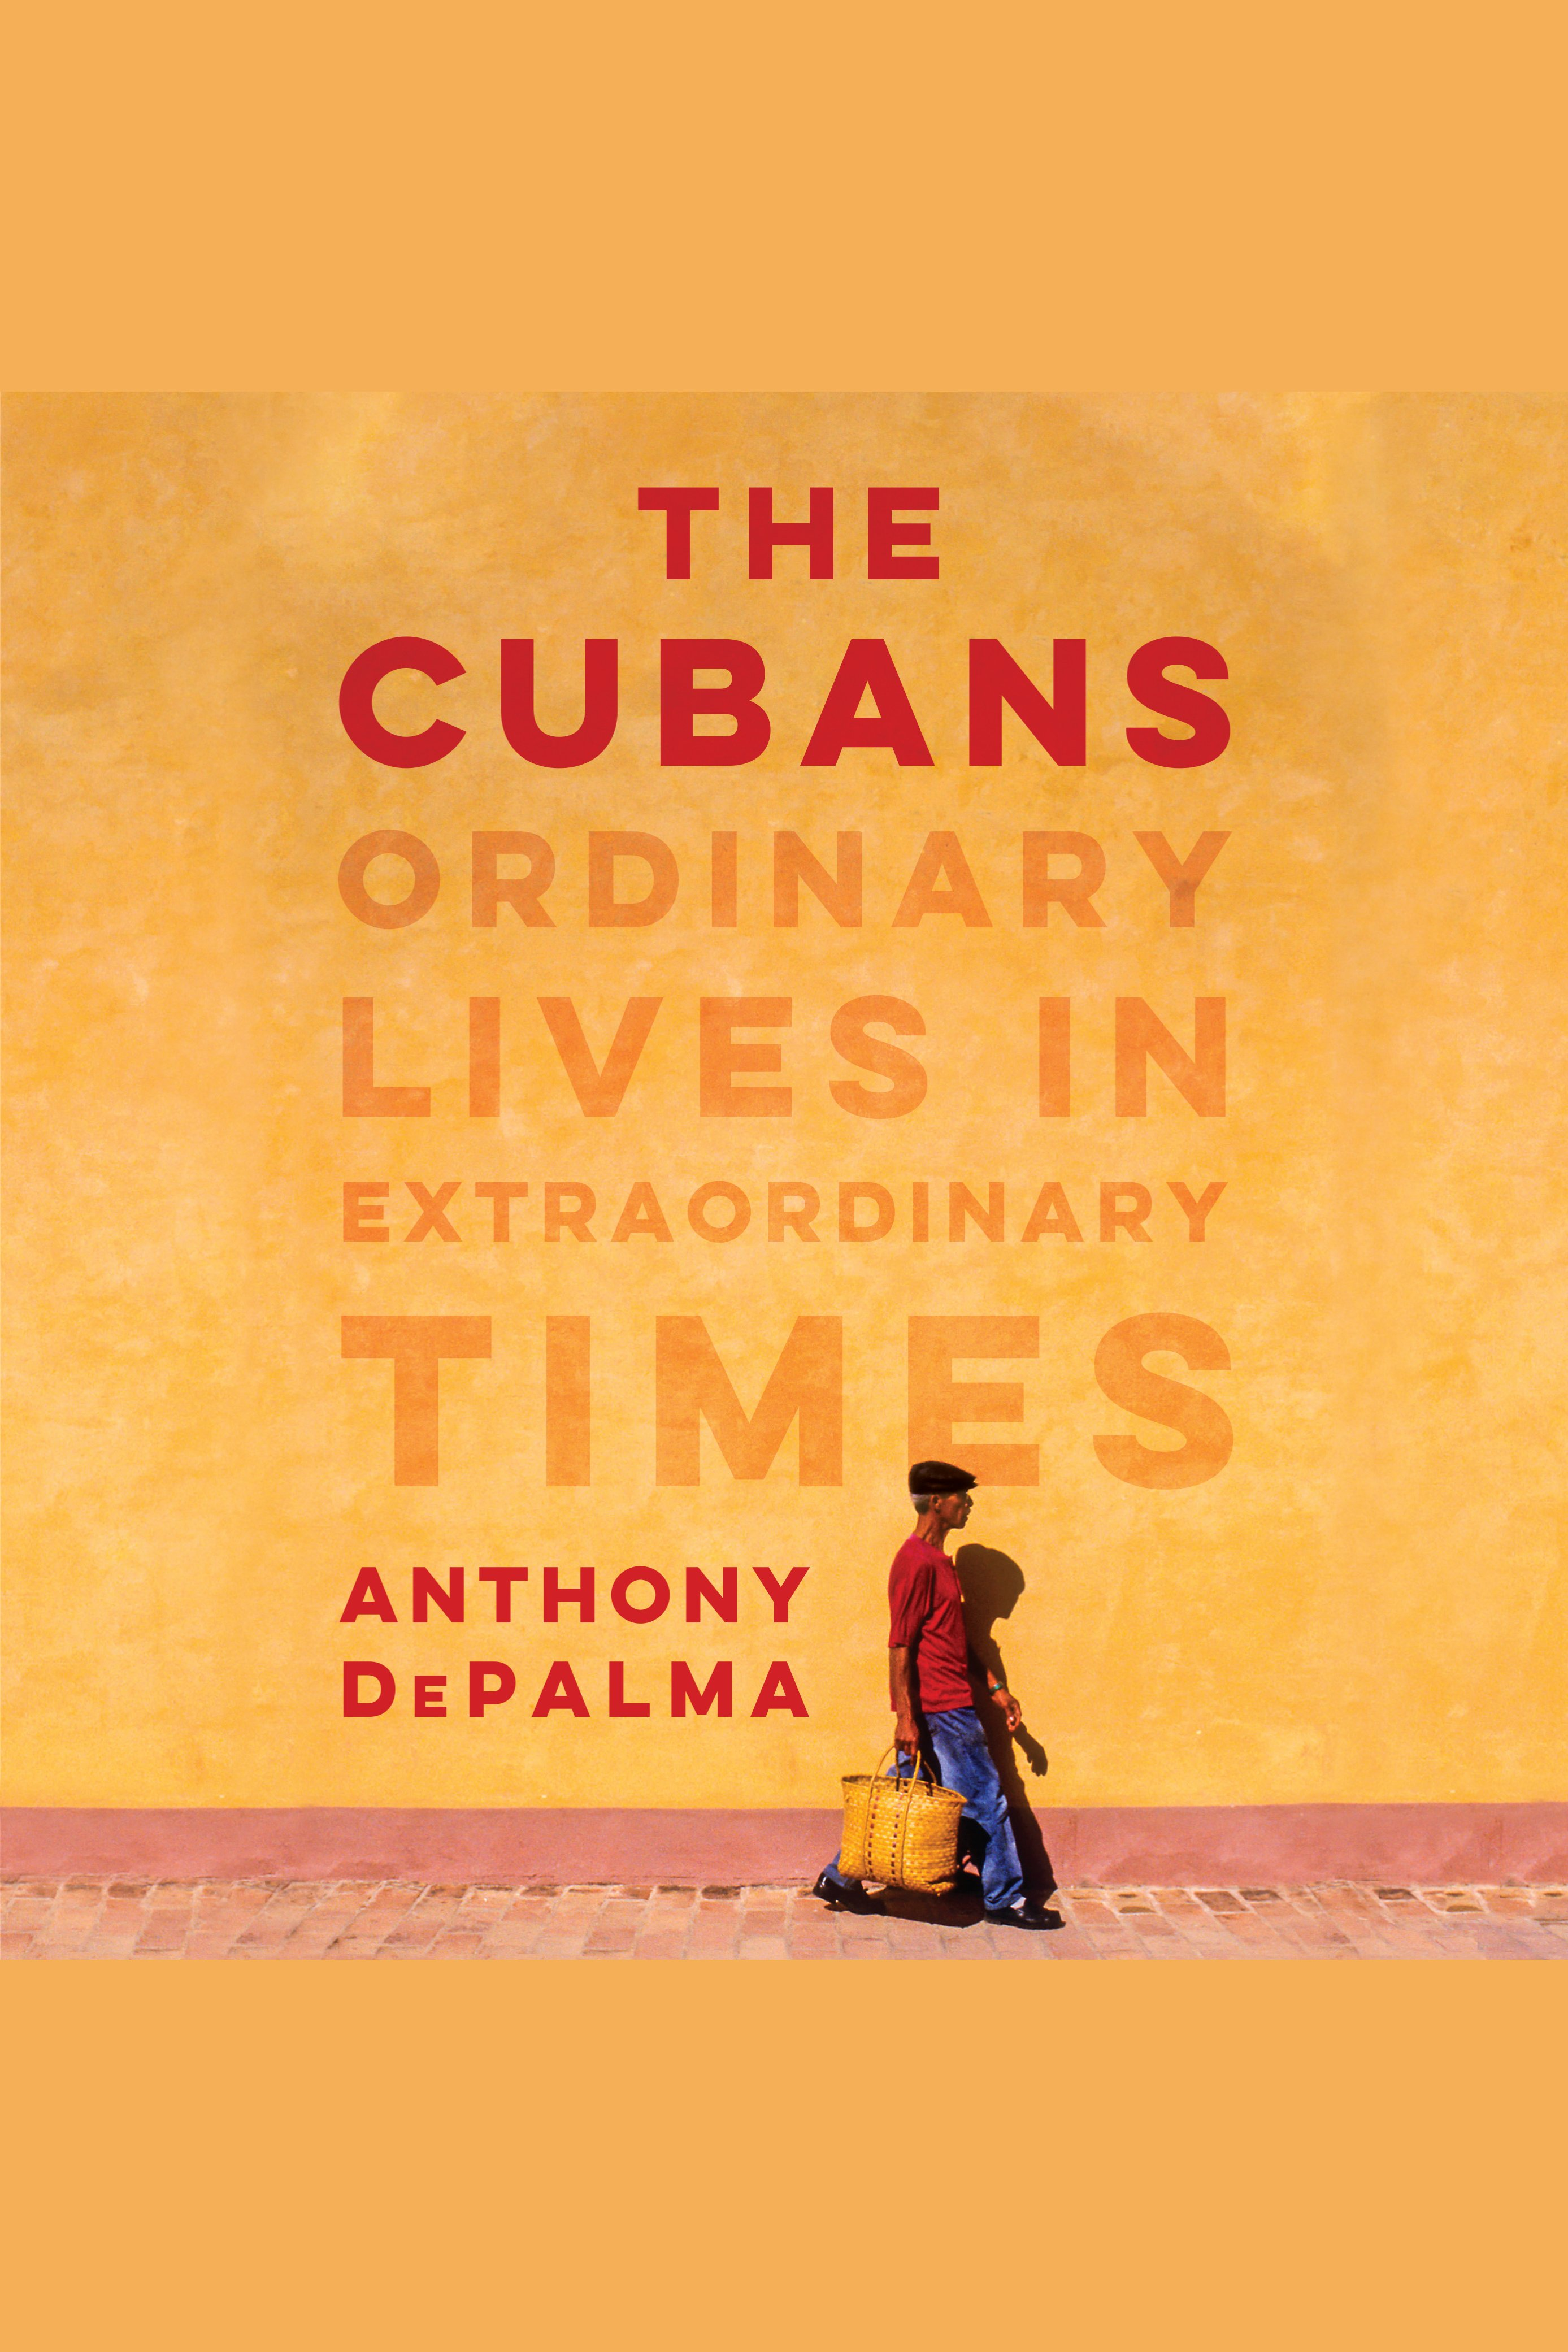 The Cubans Ordinary Lives in Extraordinary Times cover image